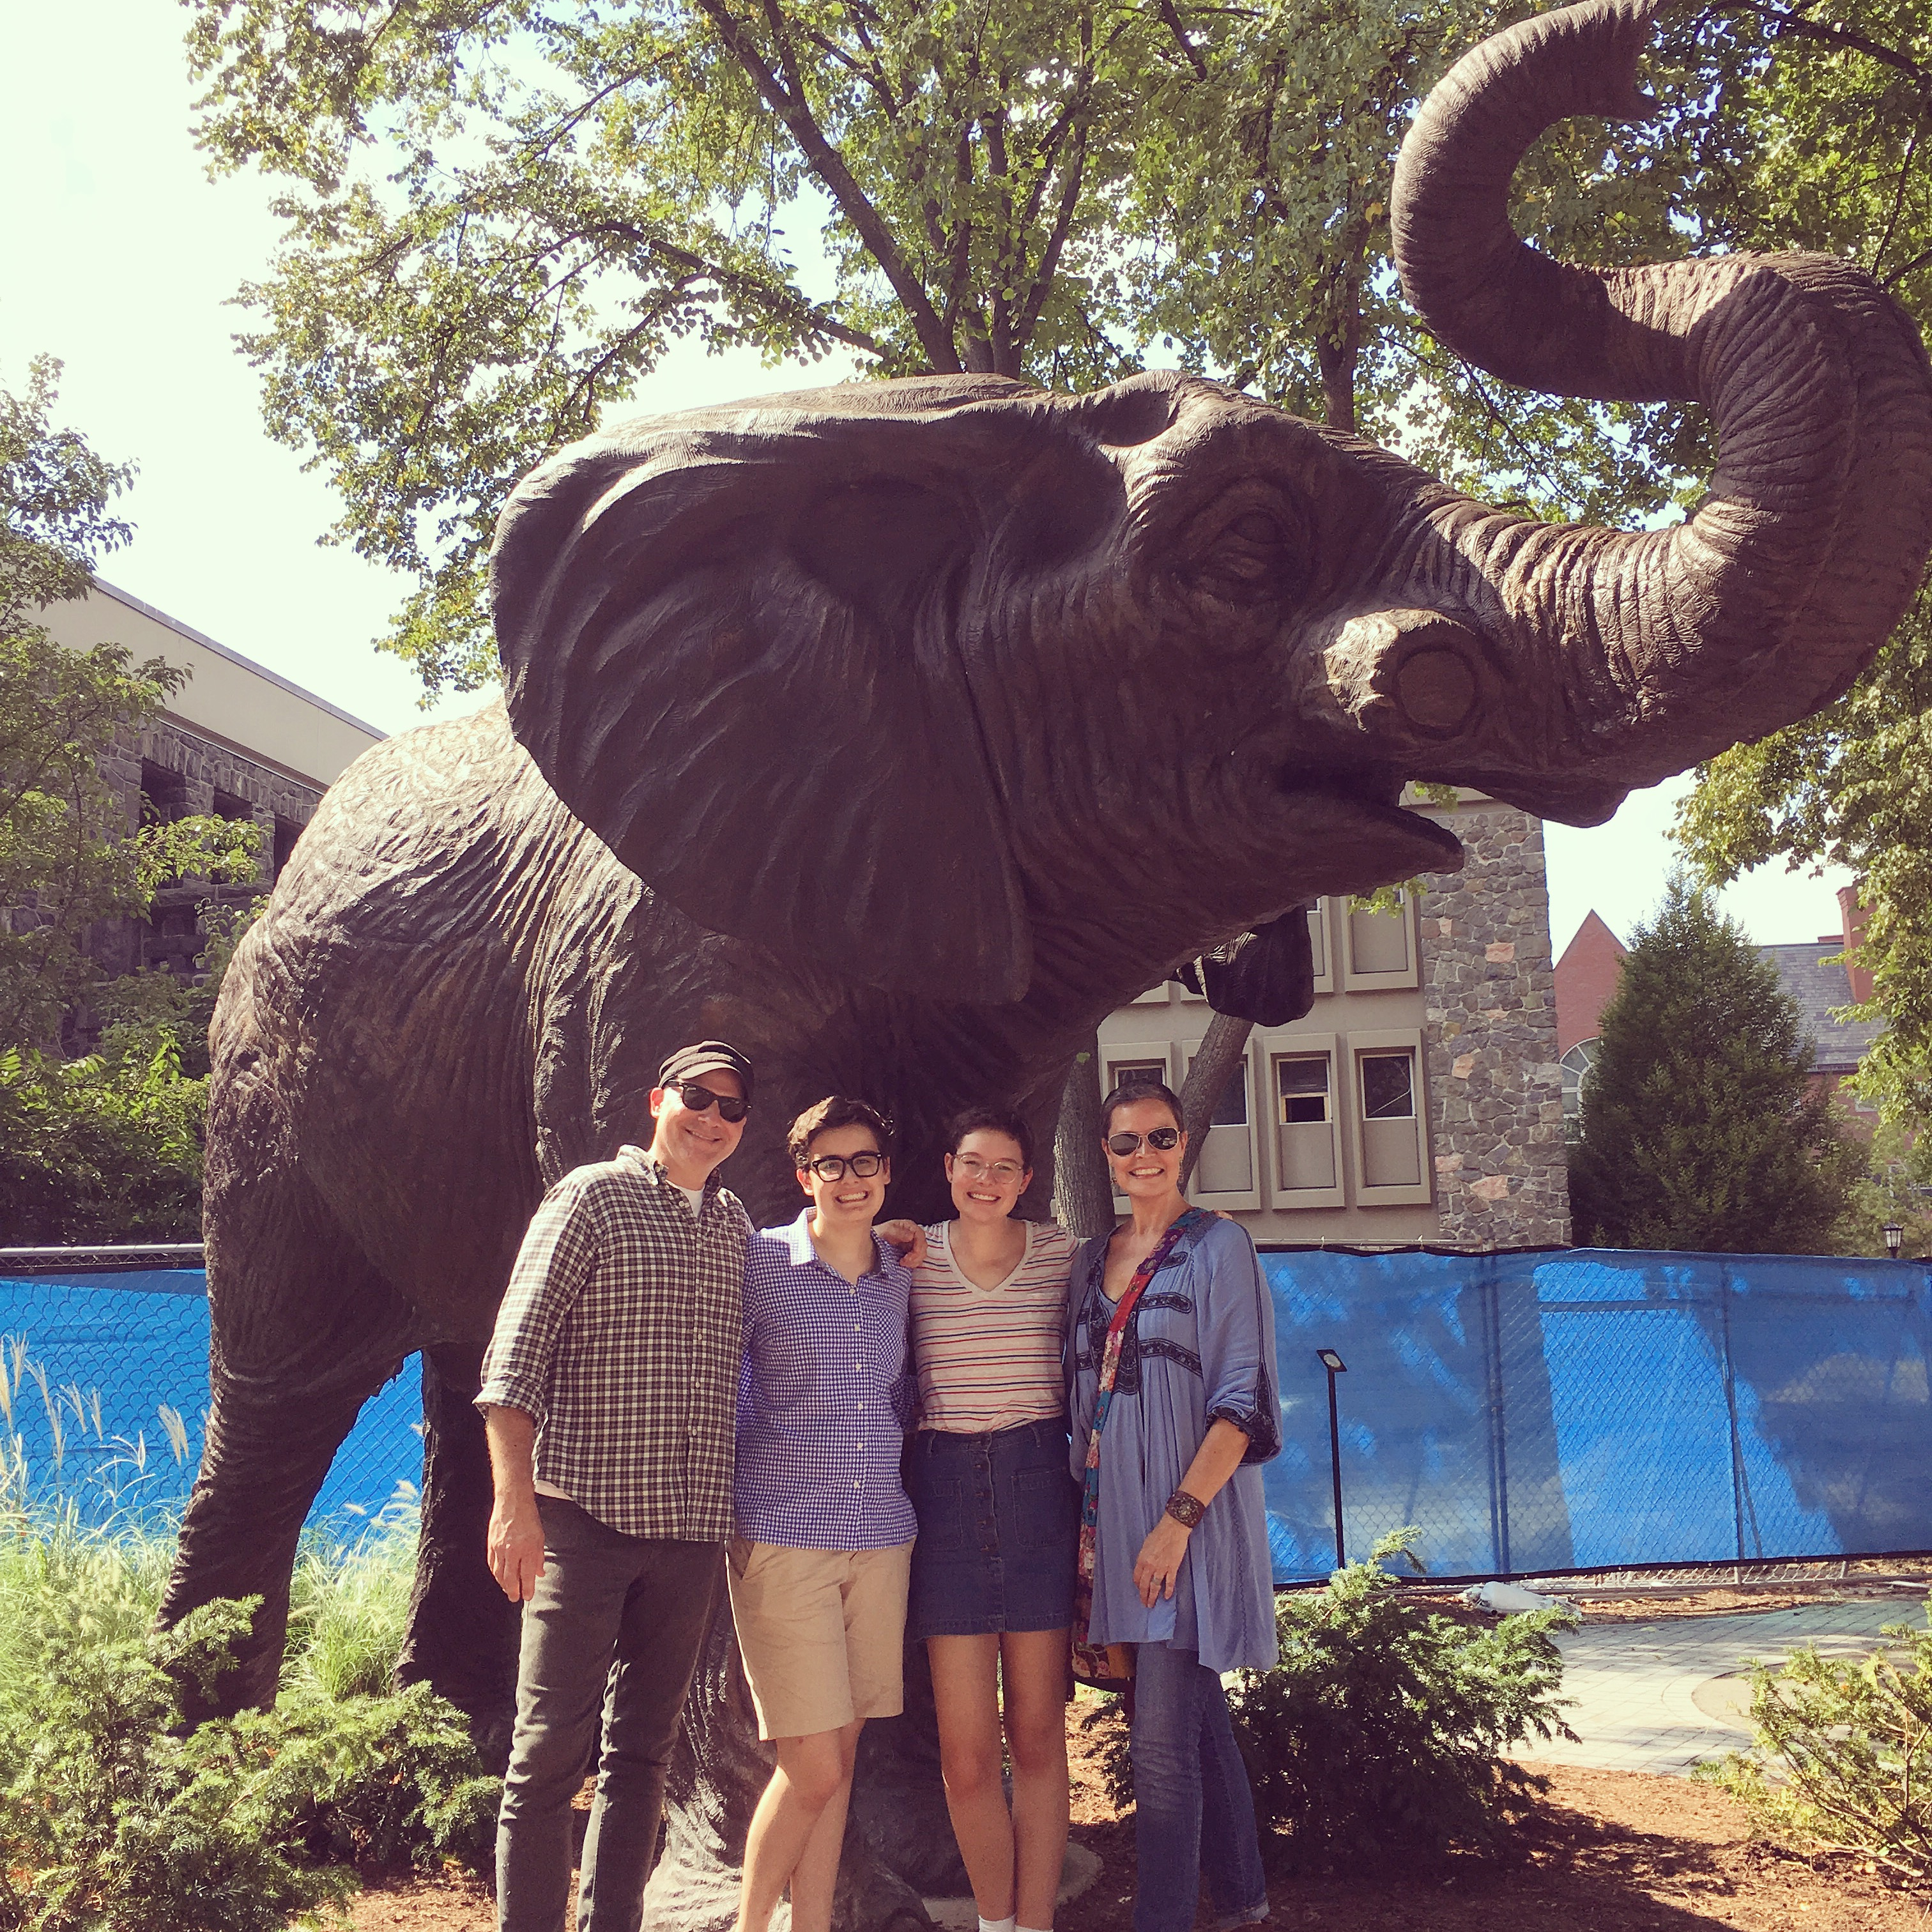 Photograph of 2019 League Champion Georgia Moore with her family at Tufts University.